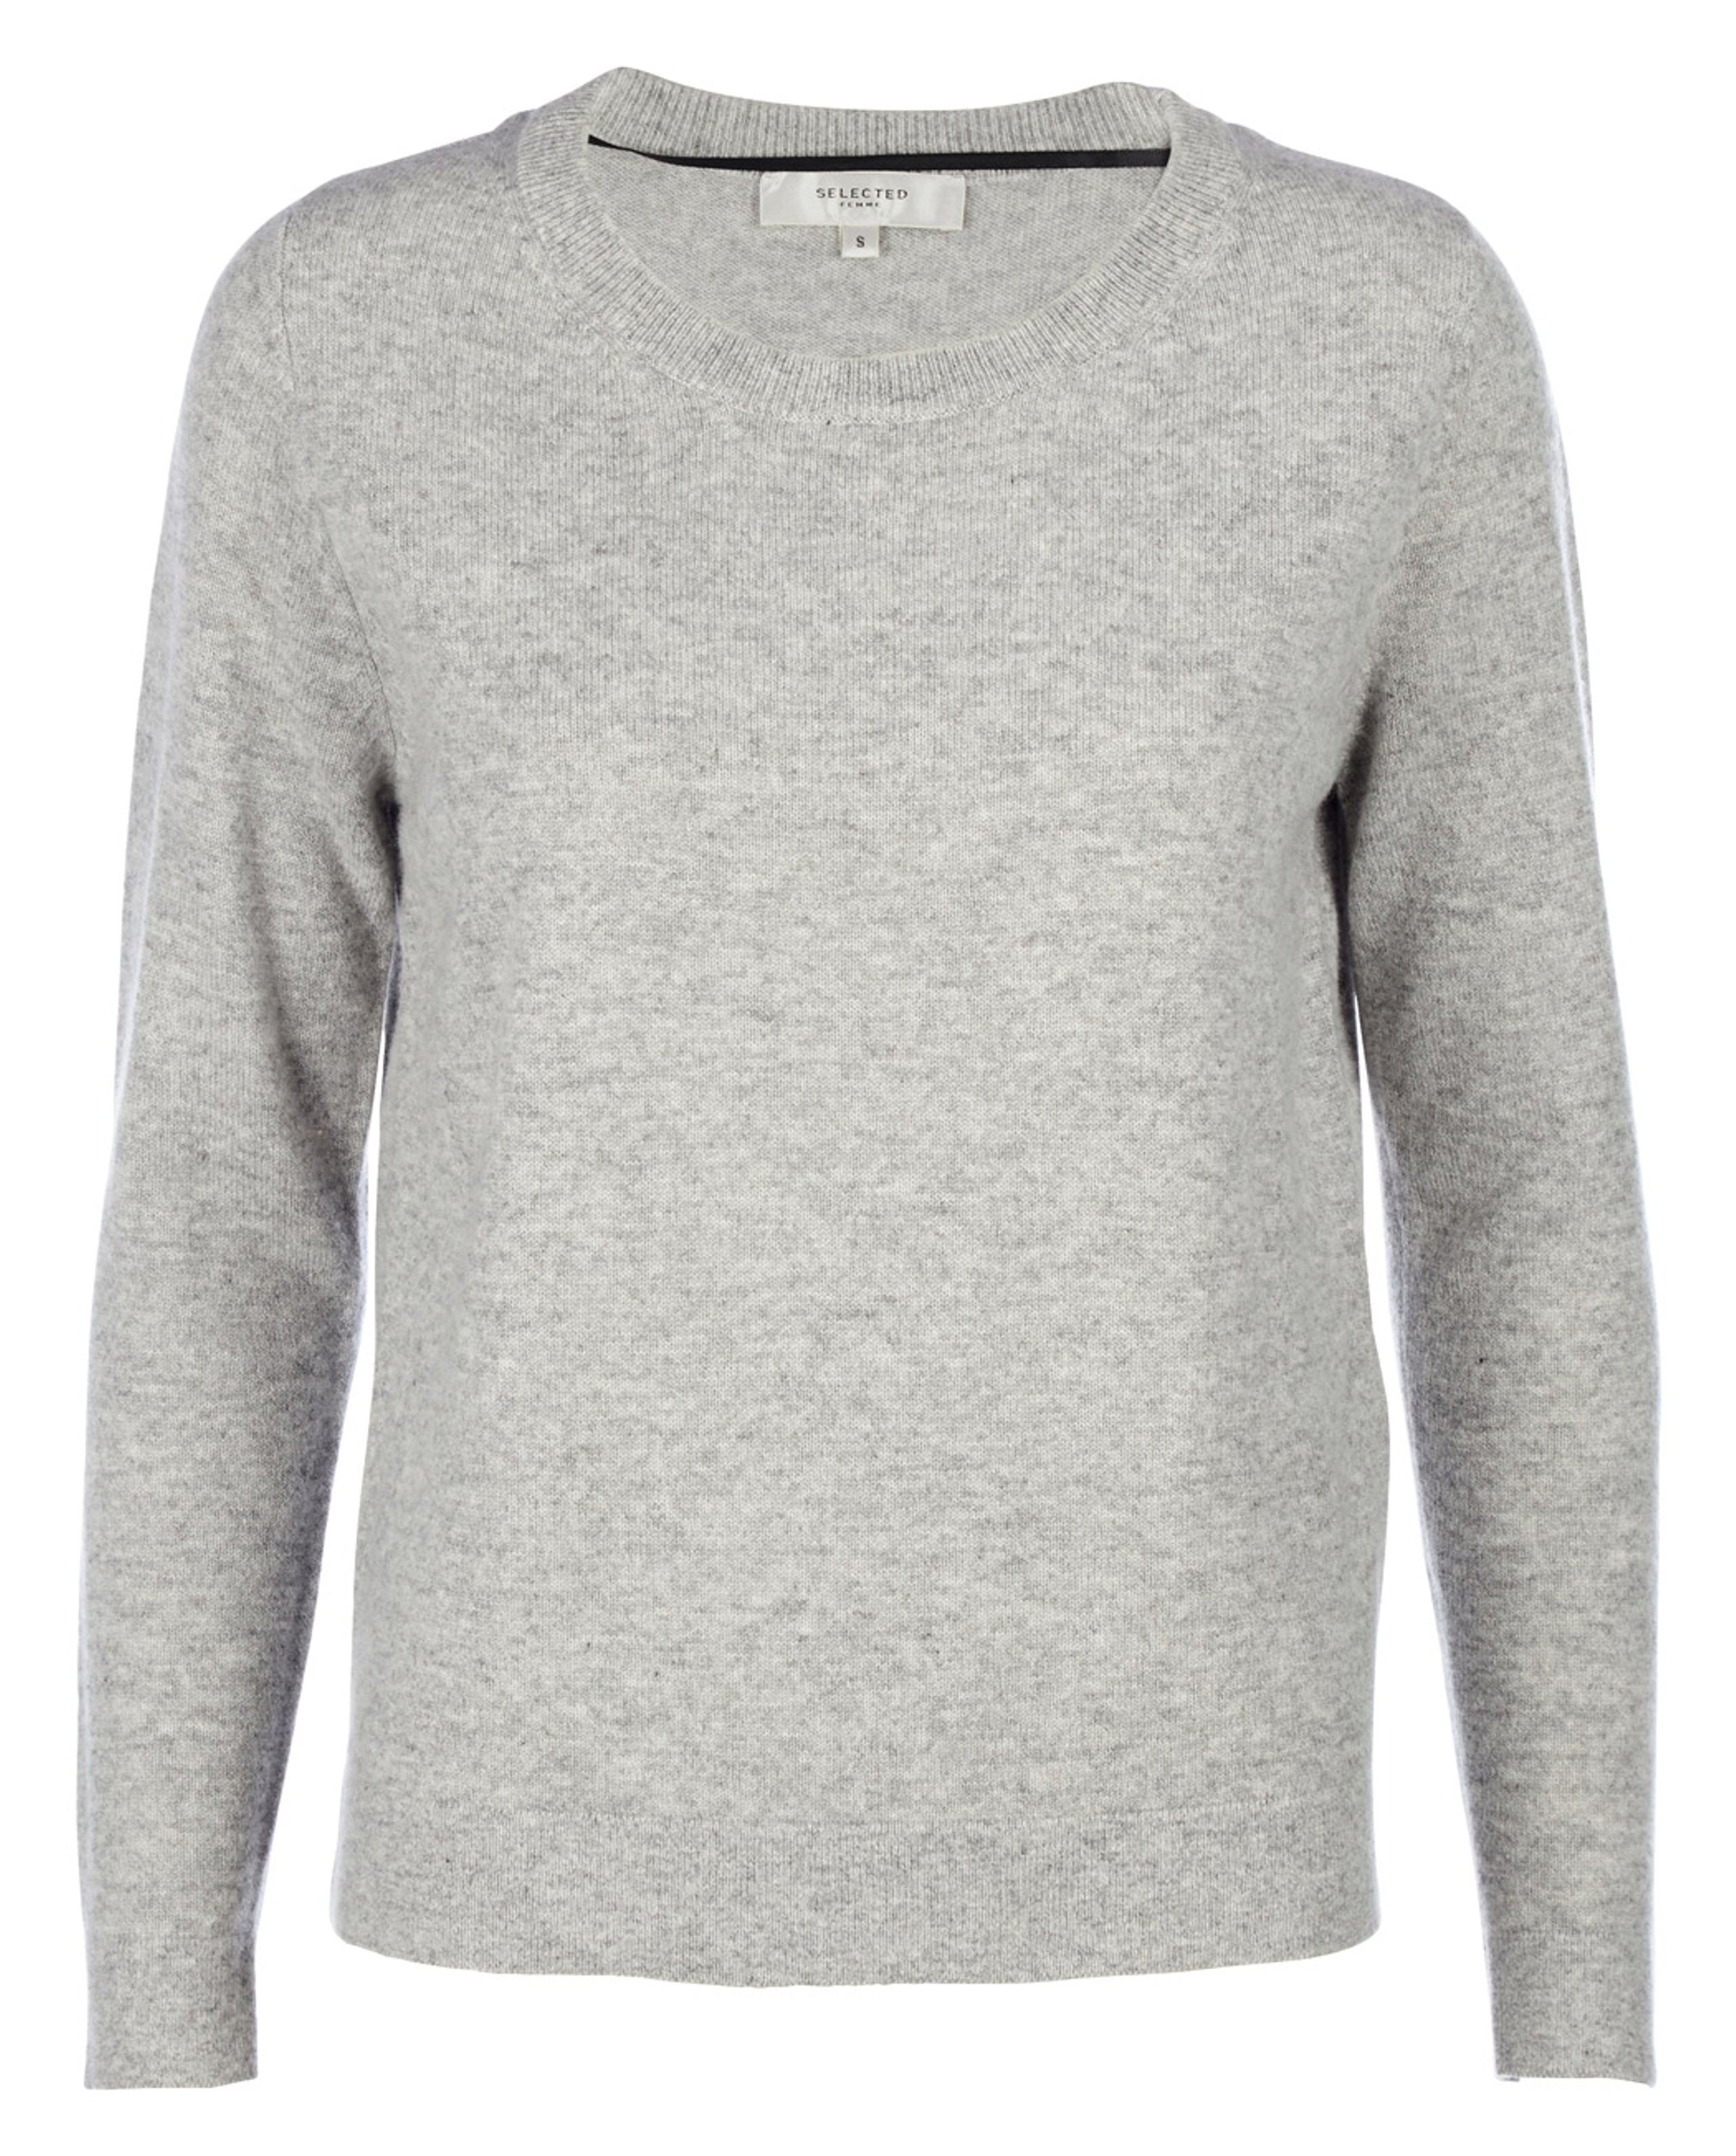 Image of   Aya Cashmere Knit